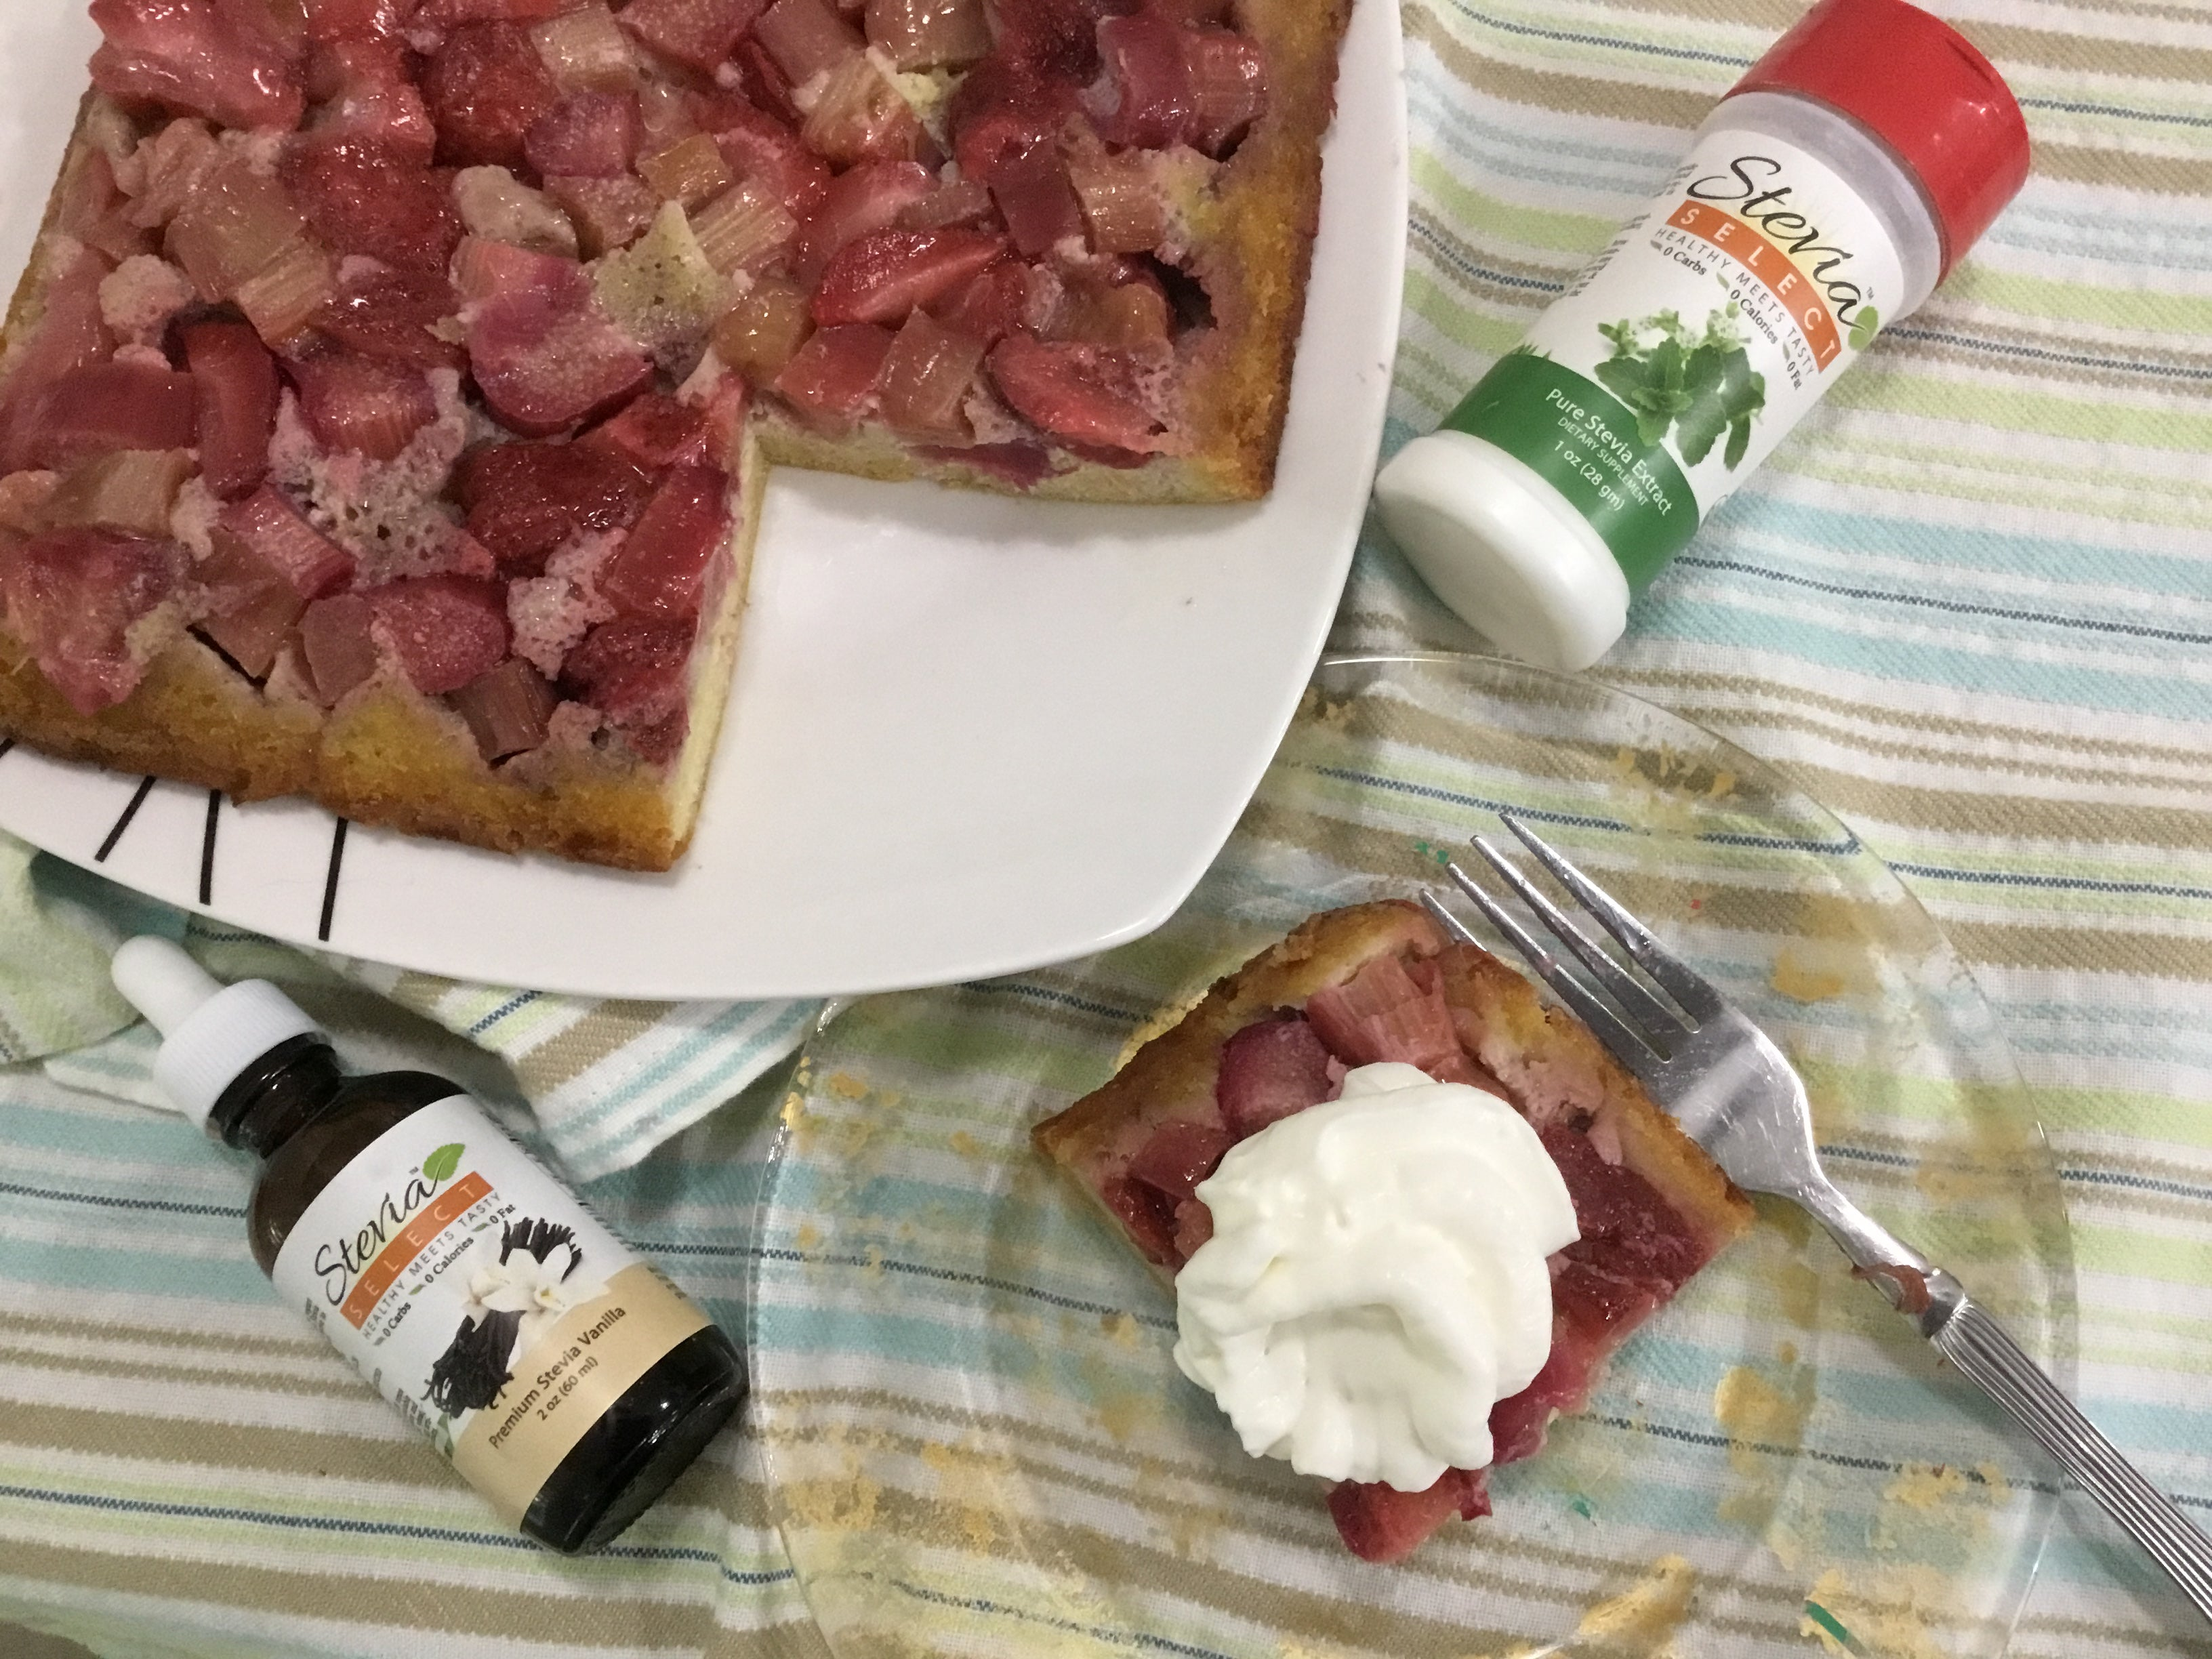 Low Carb Rhubarb Upside Down Cake